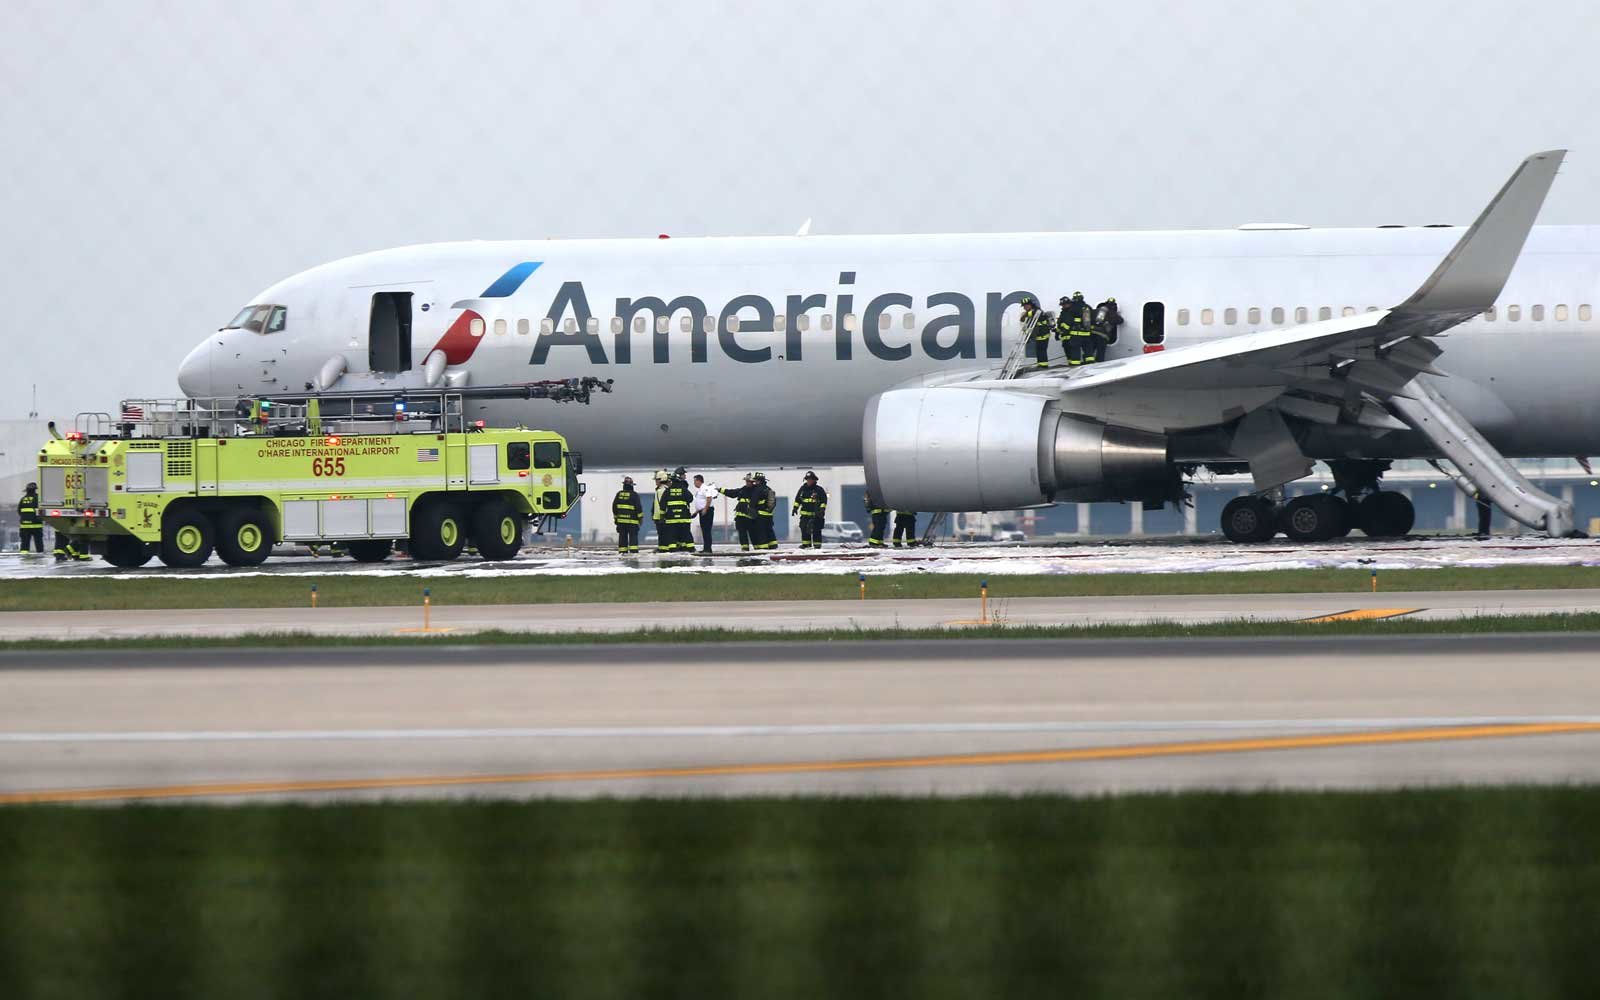 8 injured when plane catches fire on runway at O'Hare